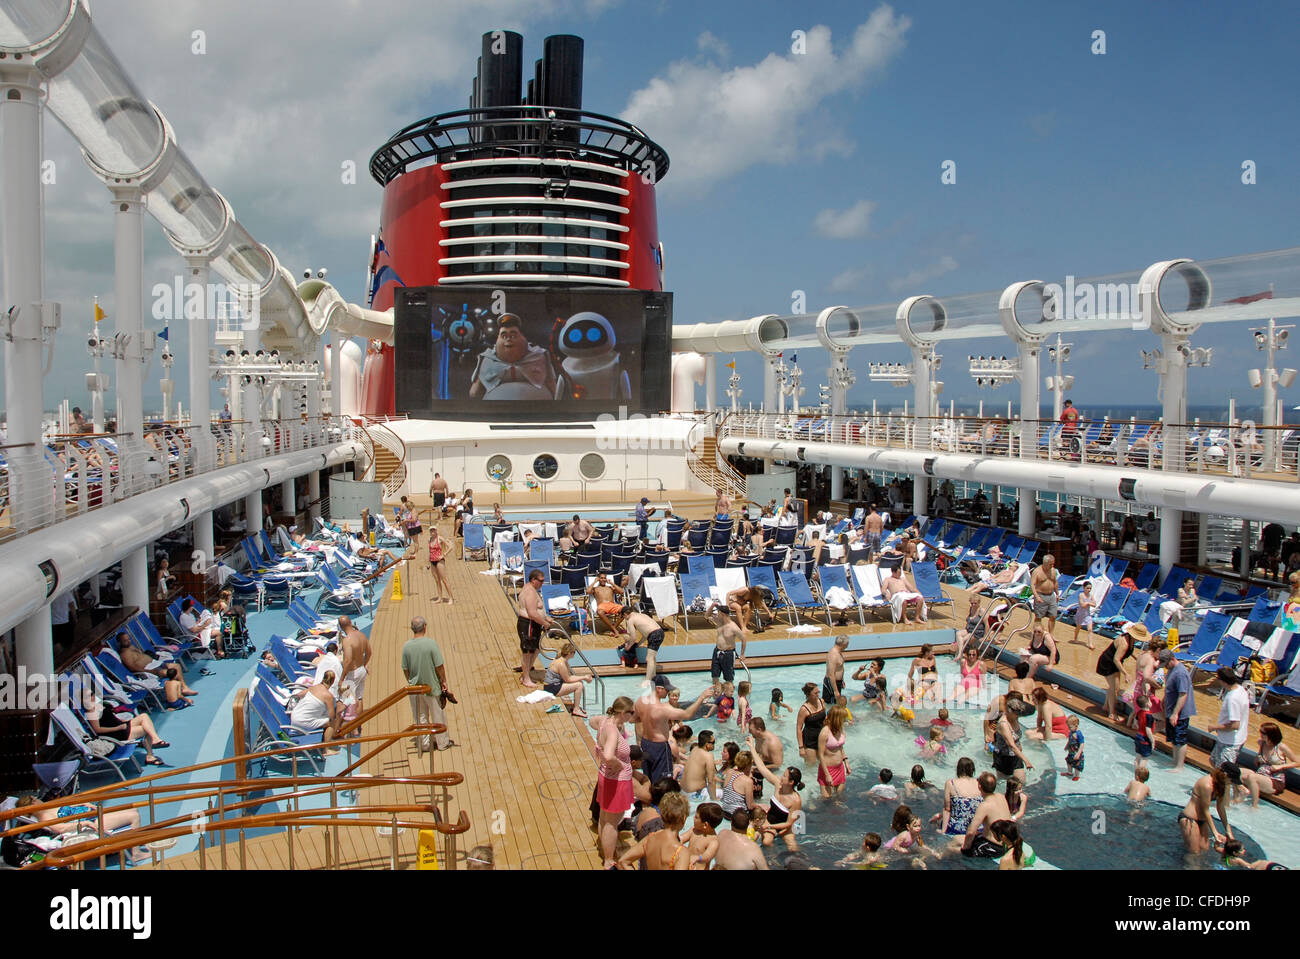 Swimming Pools And Outdoor Theater On The Disney Cruise